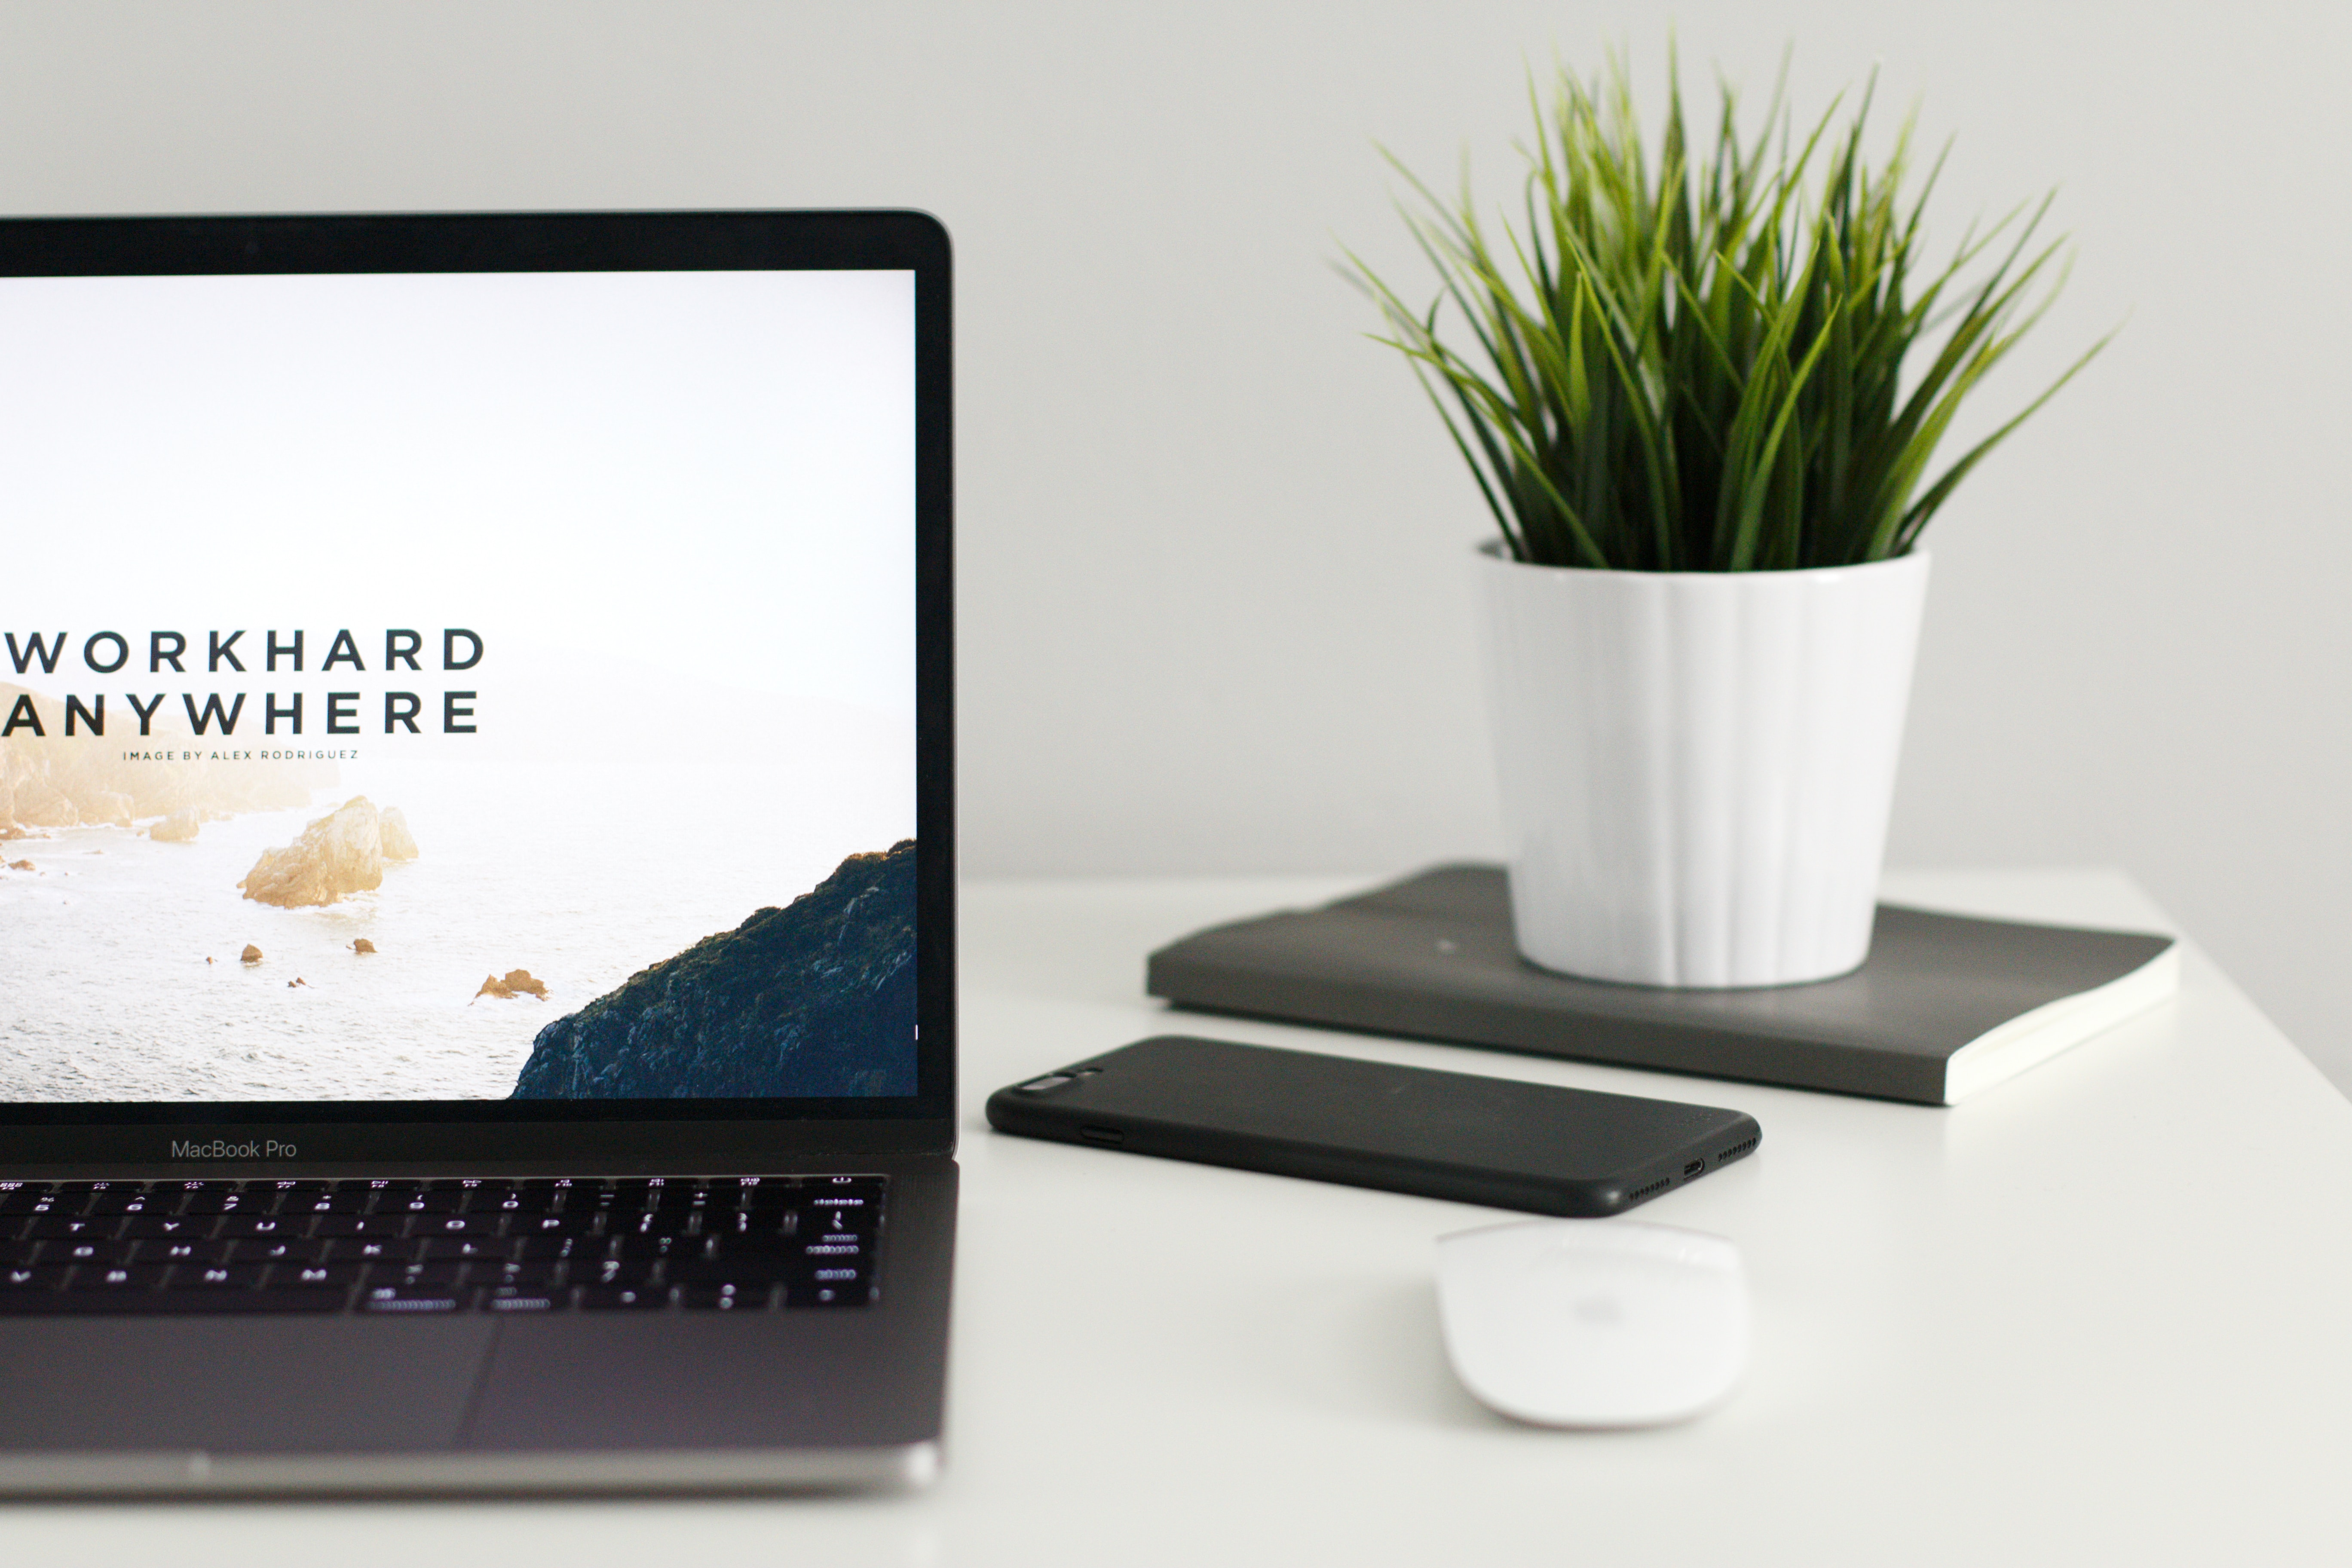 laptop mouse and houseplant